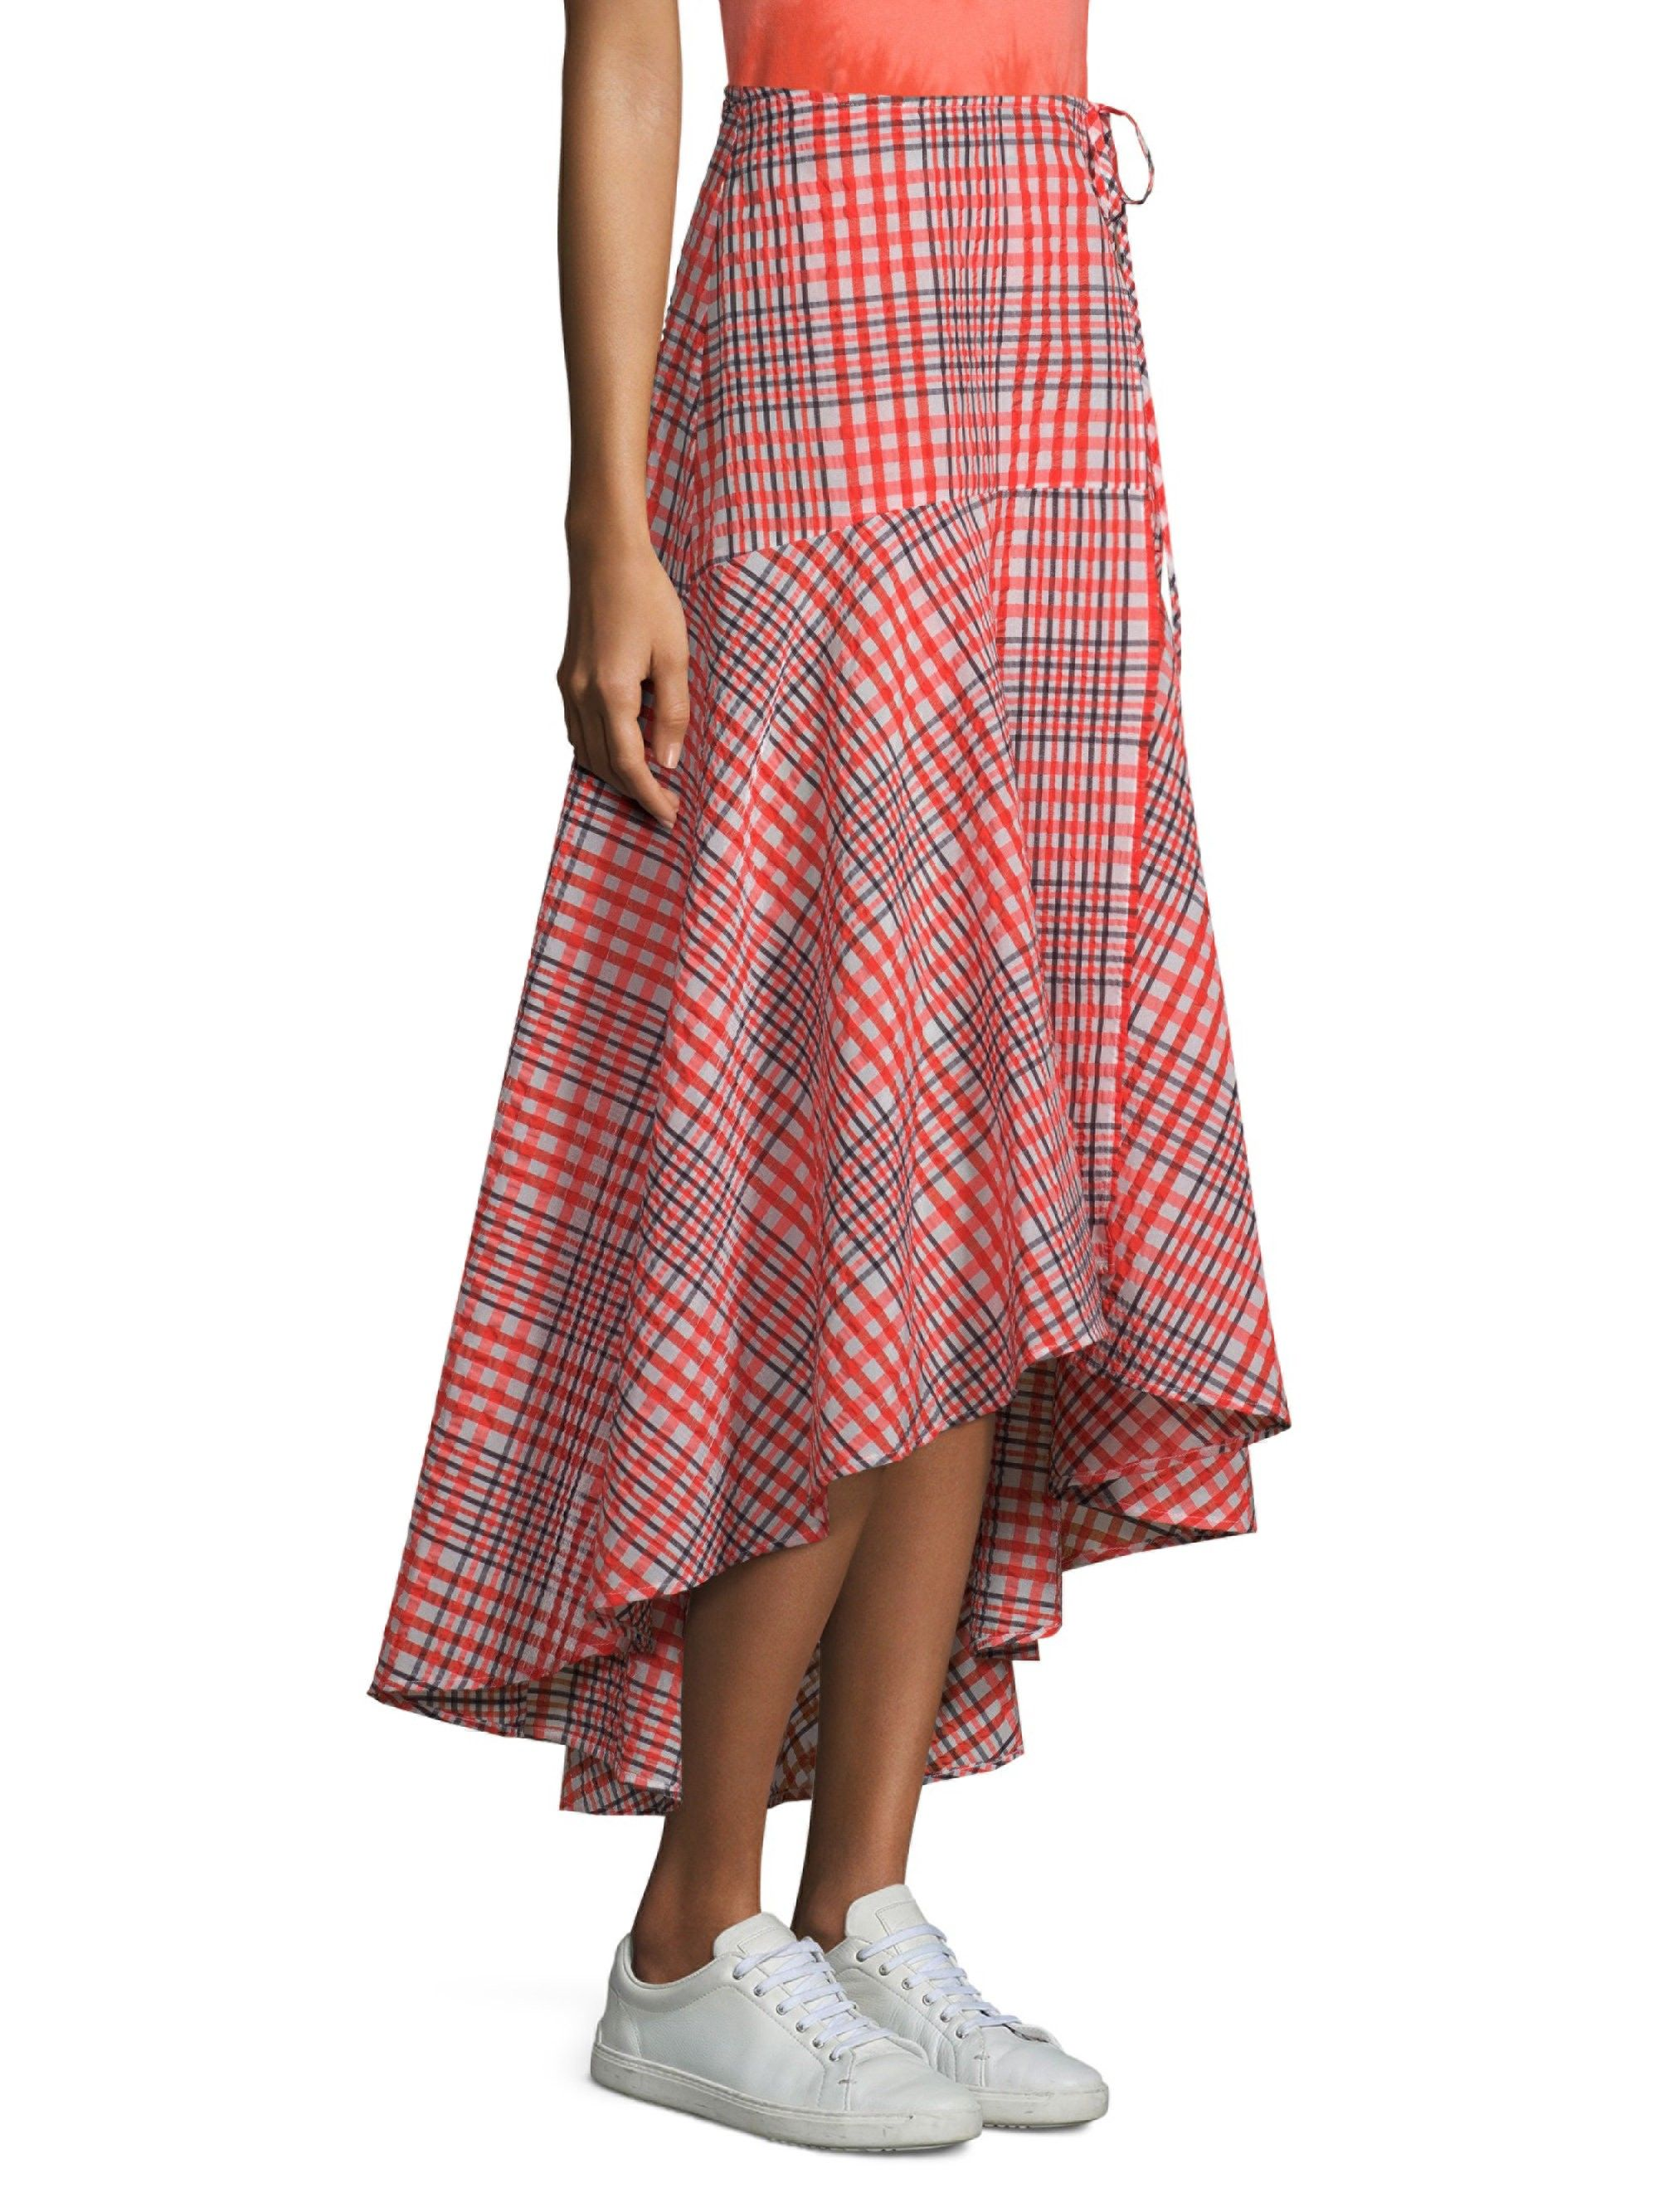 Ganni Charron Wrap Skirt - Big Apple 38 (6) 91216880cec